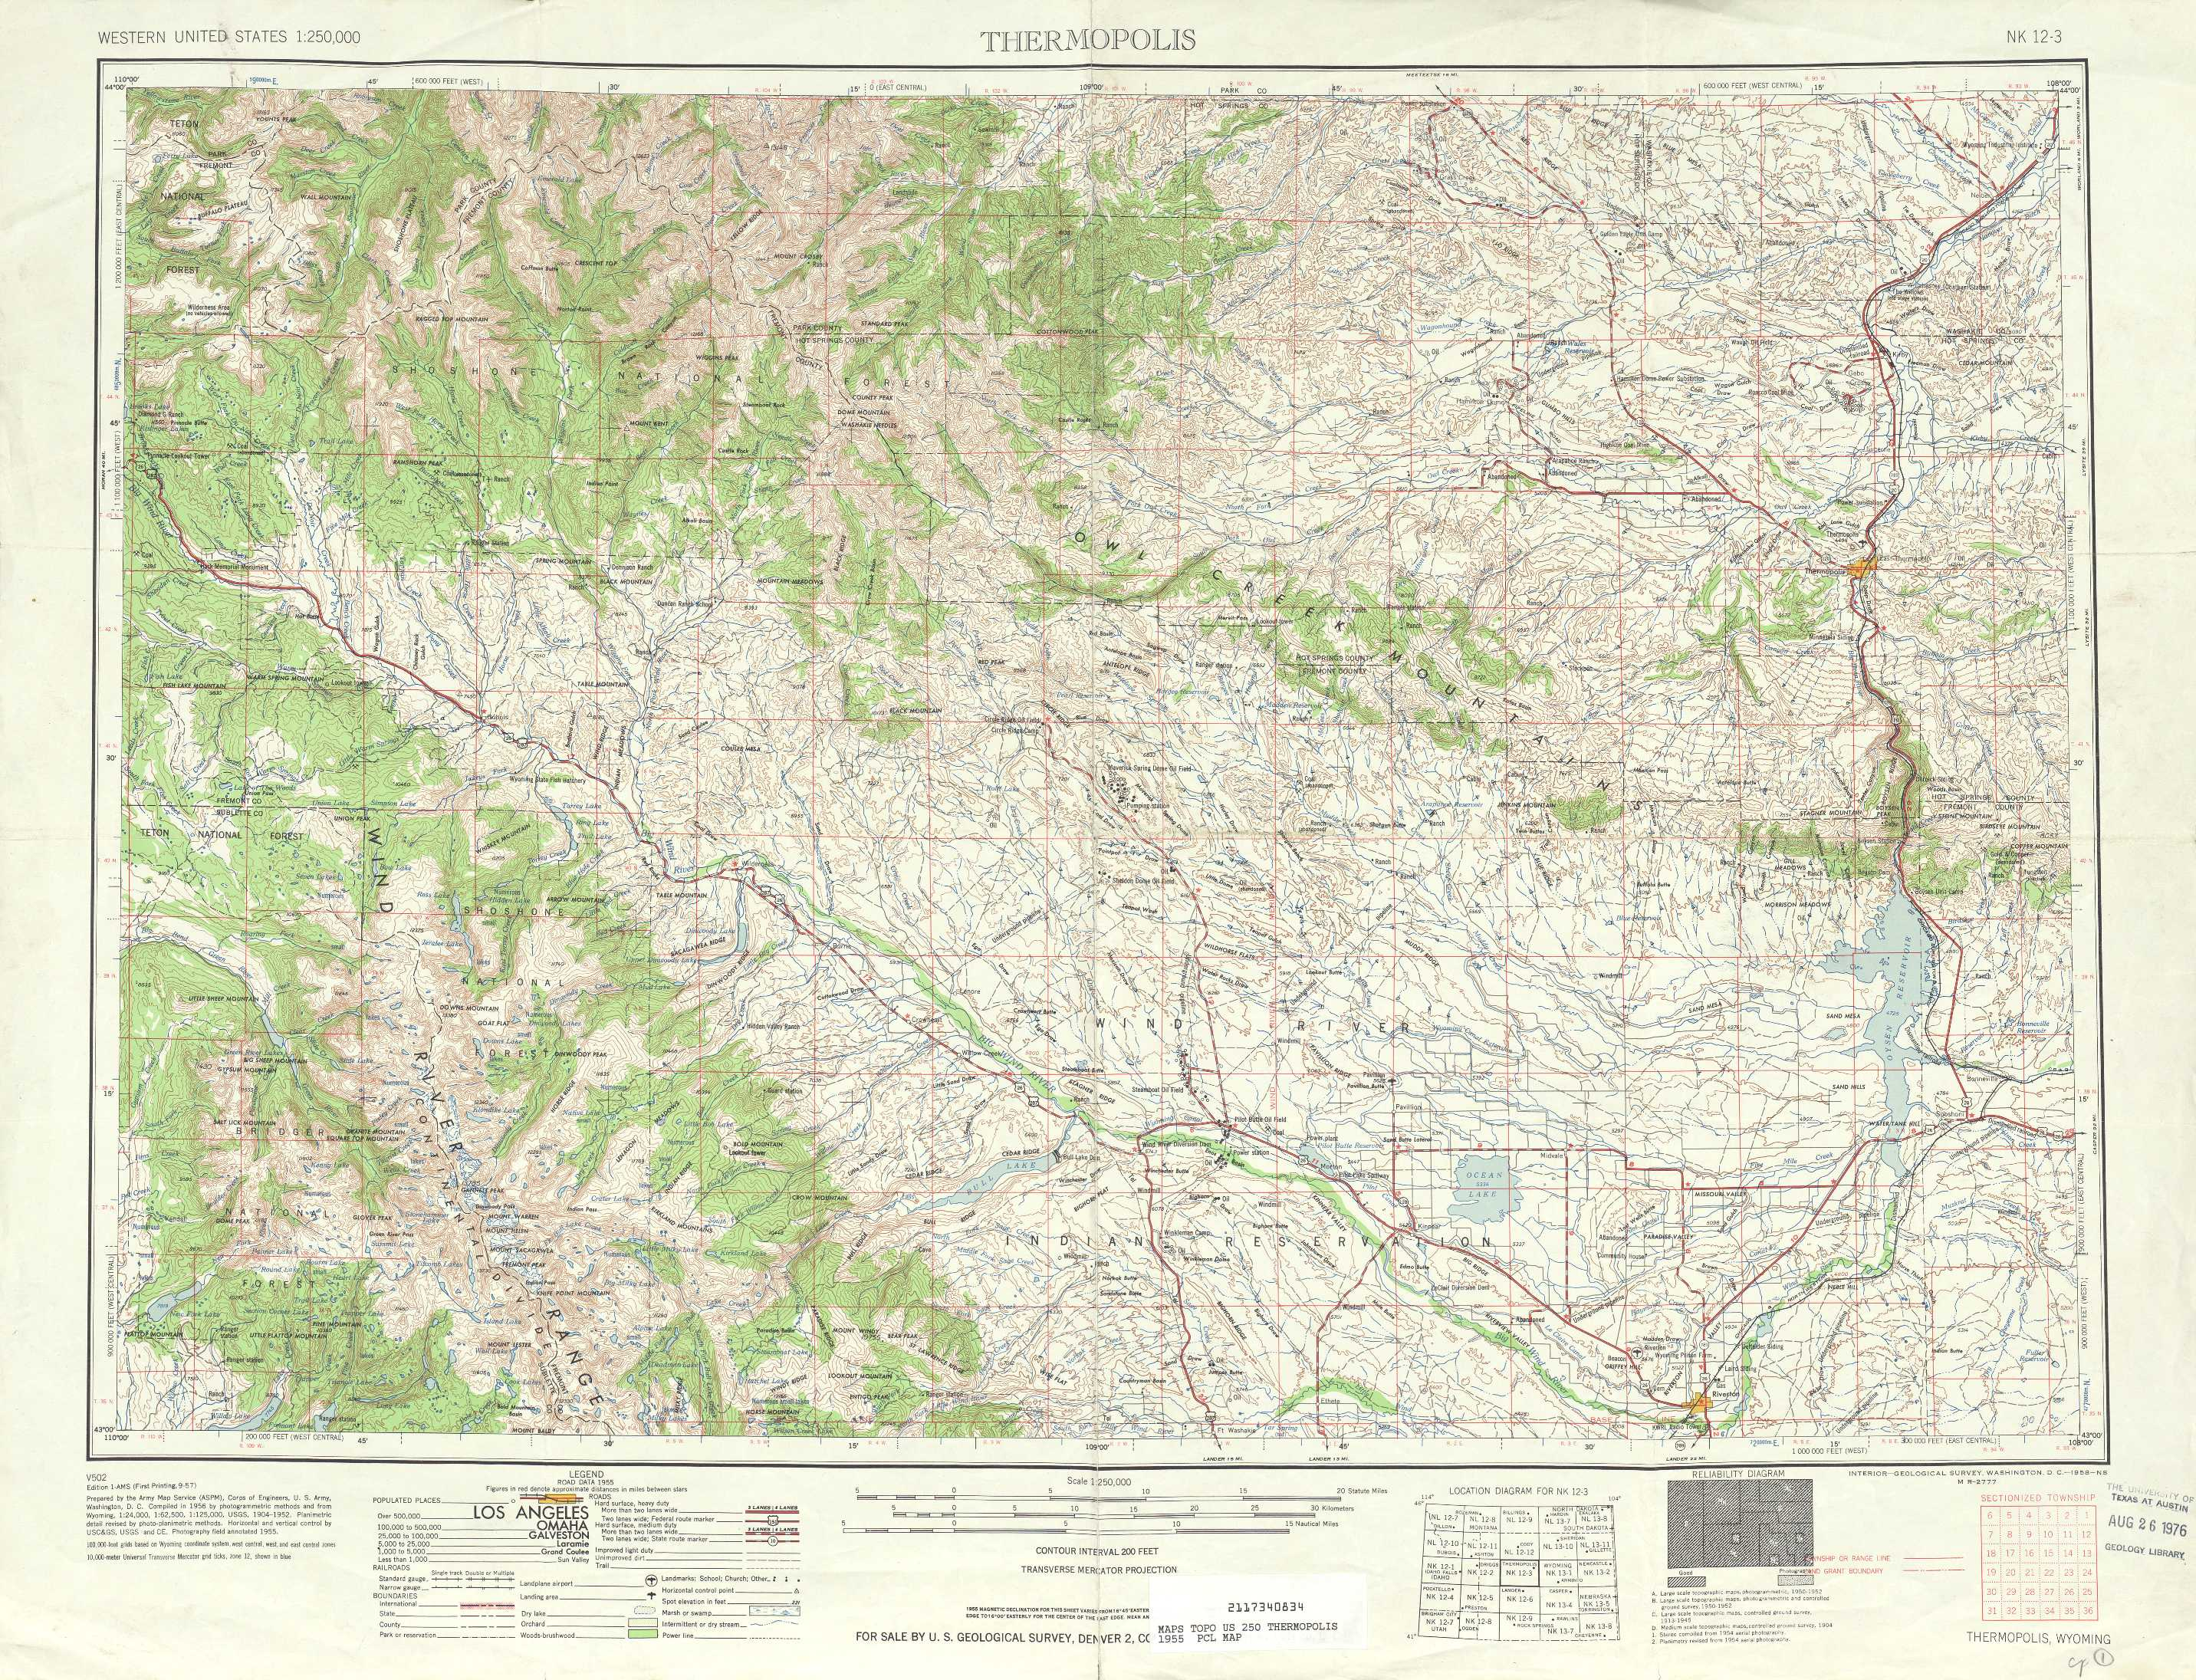 Thermopolis Topographic Maps WY USGS Topo Quad A At - Maps wyoming